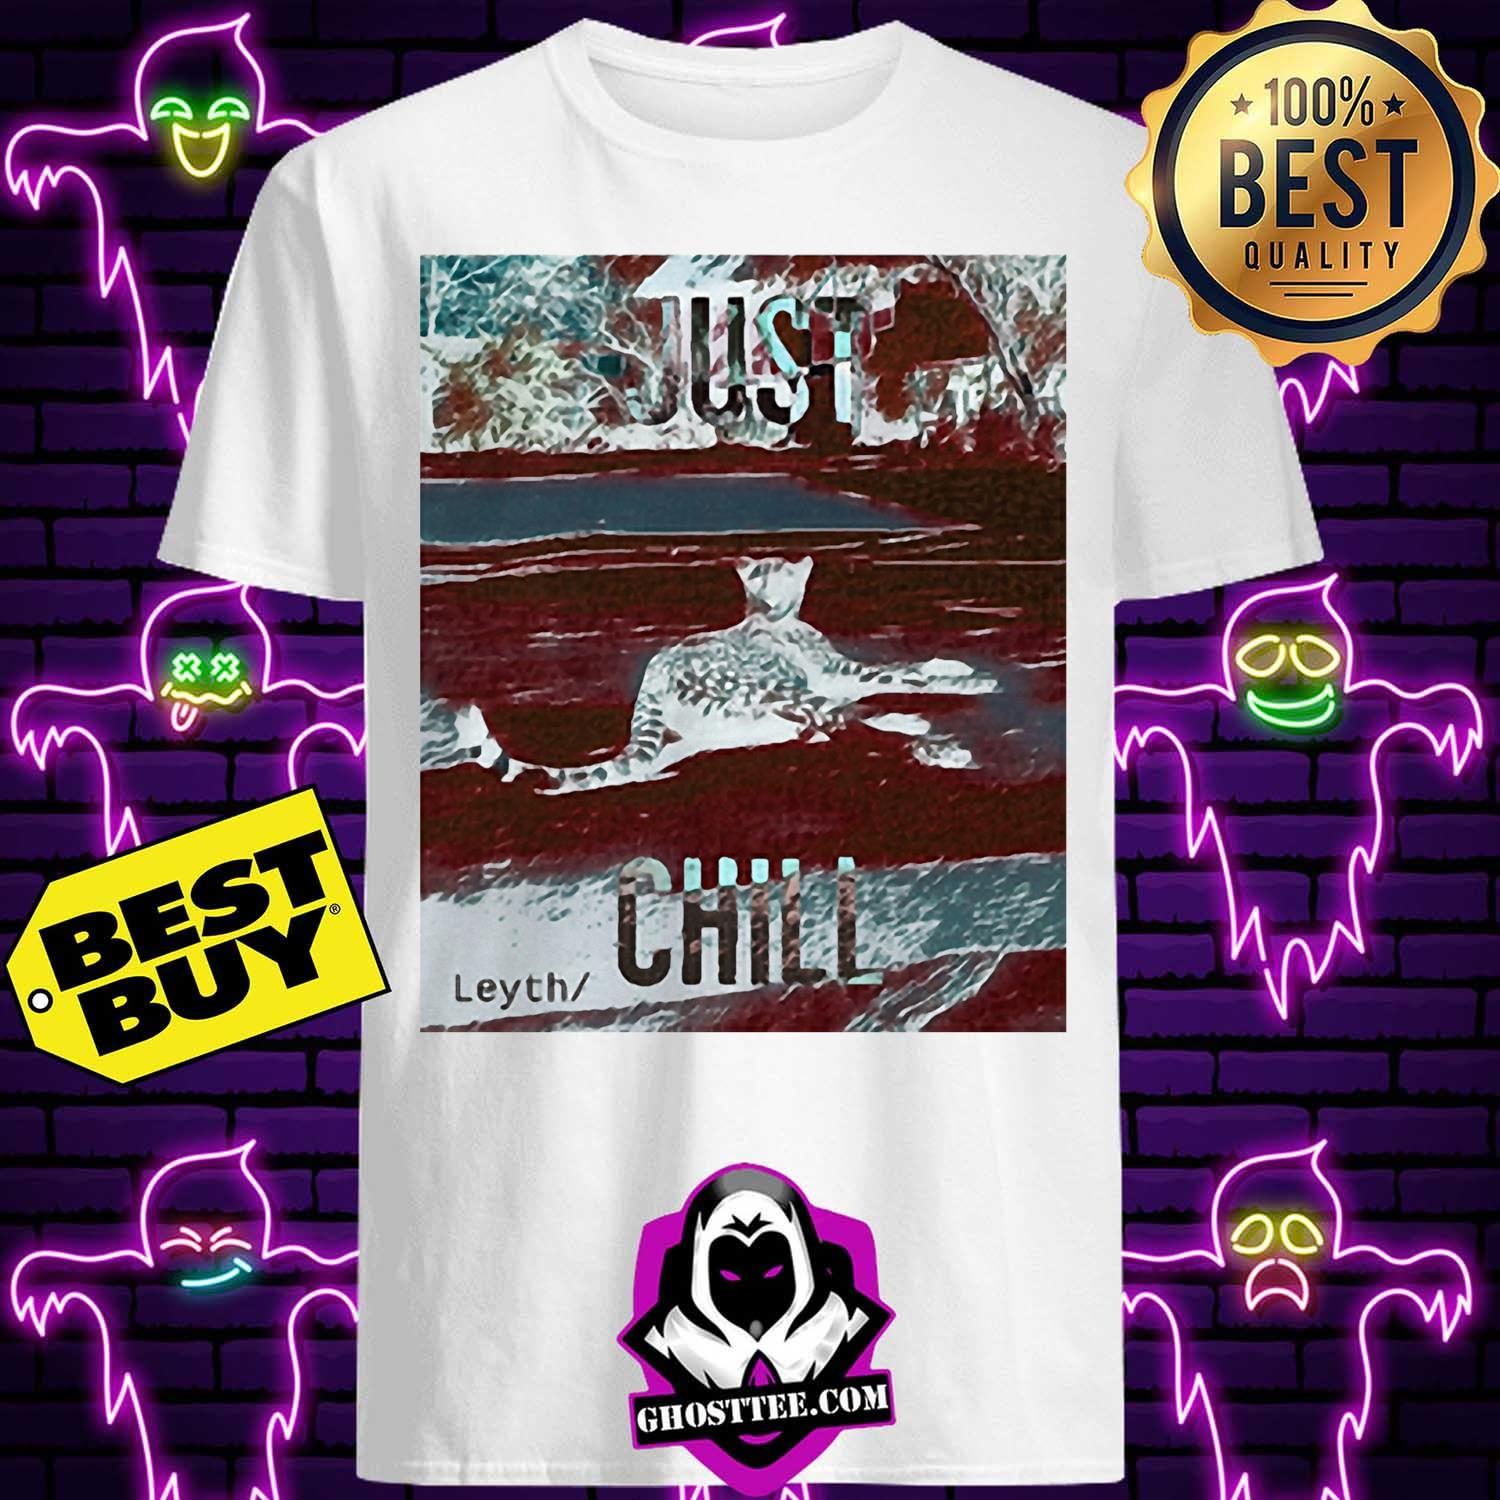 just chill ocelot leyth ladies tee - Just chill Ocelot Leyth vintage shirt